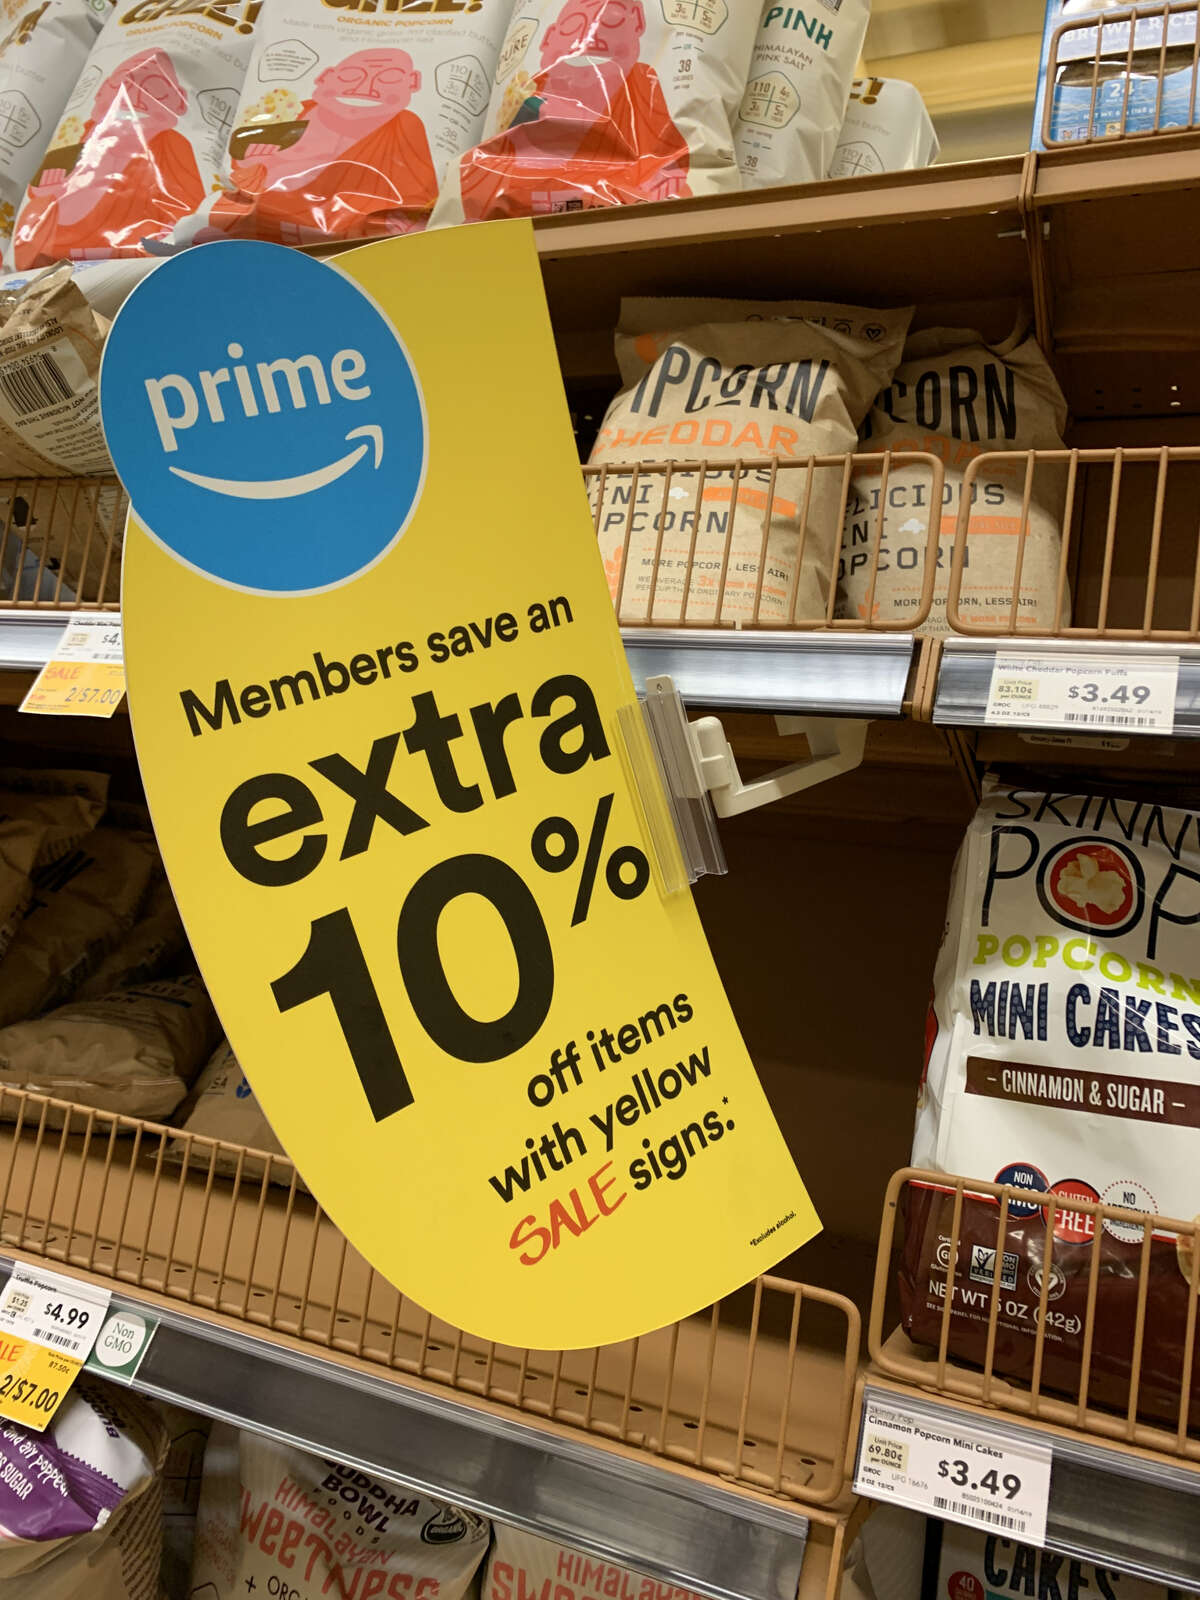 Prime members also save an extra 10 percent off items with yellow sale signs.